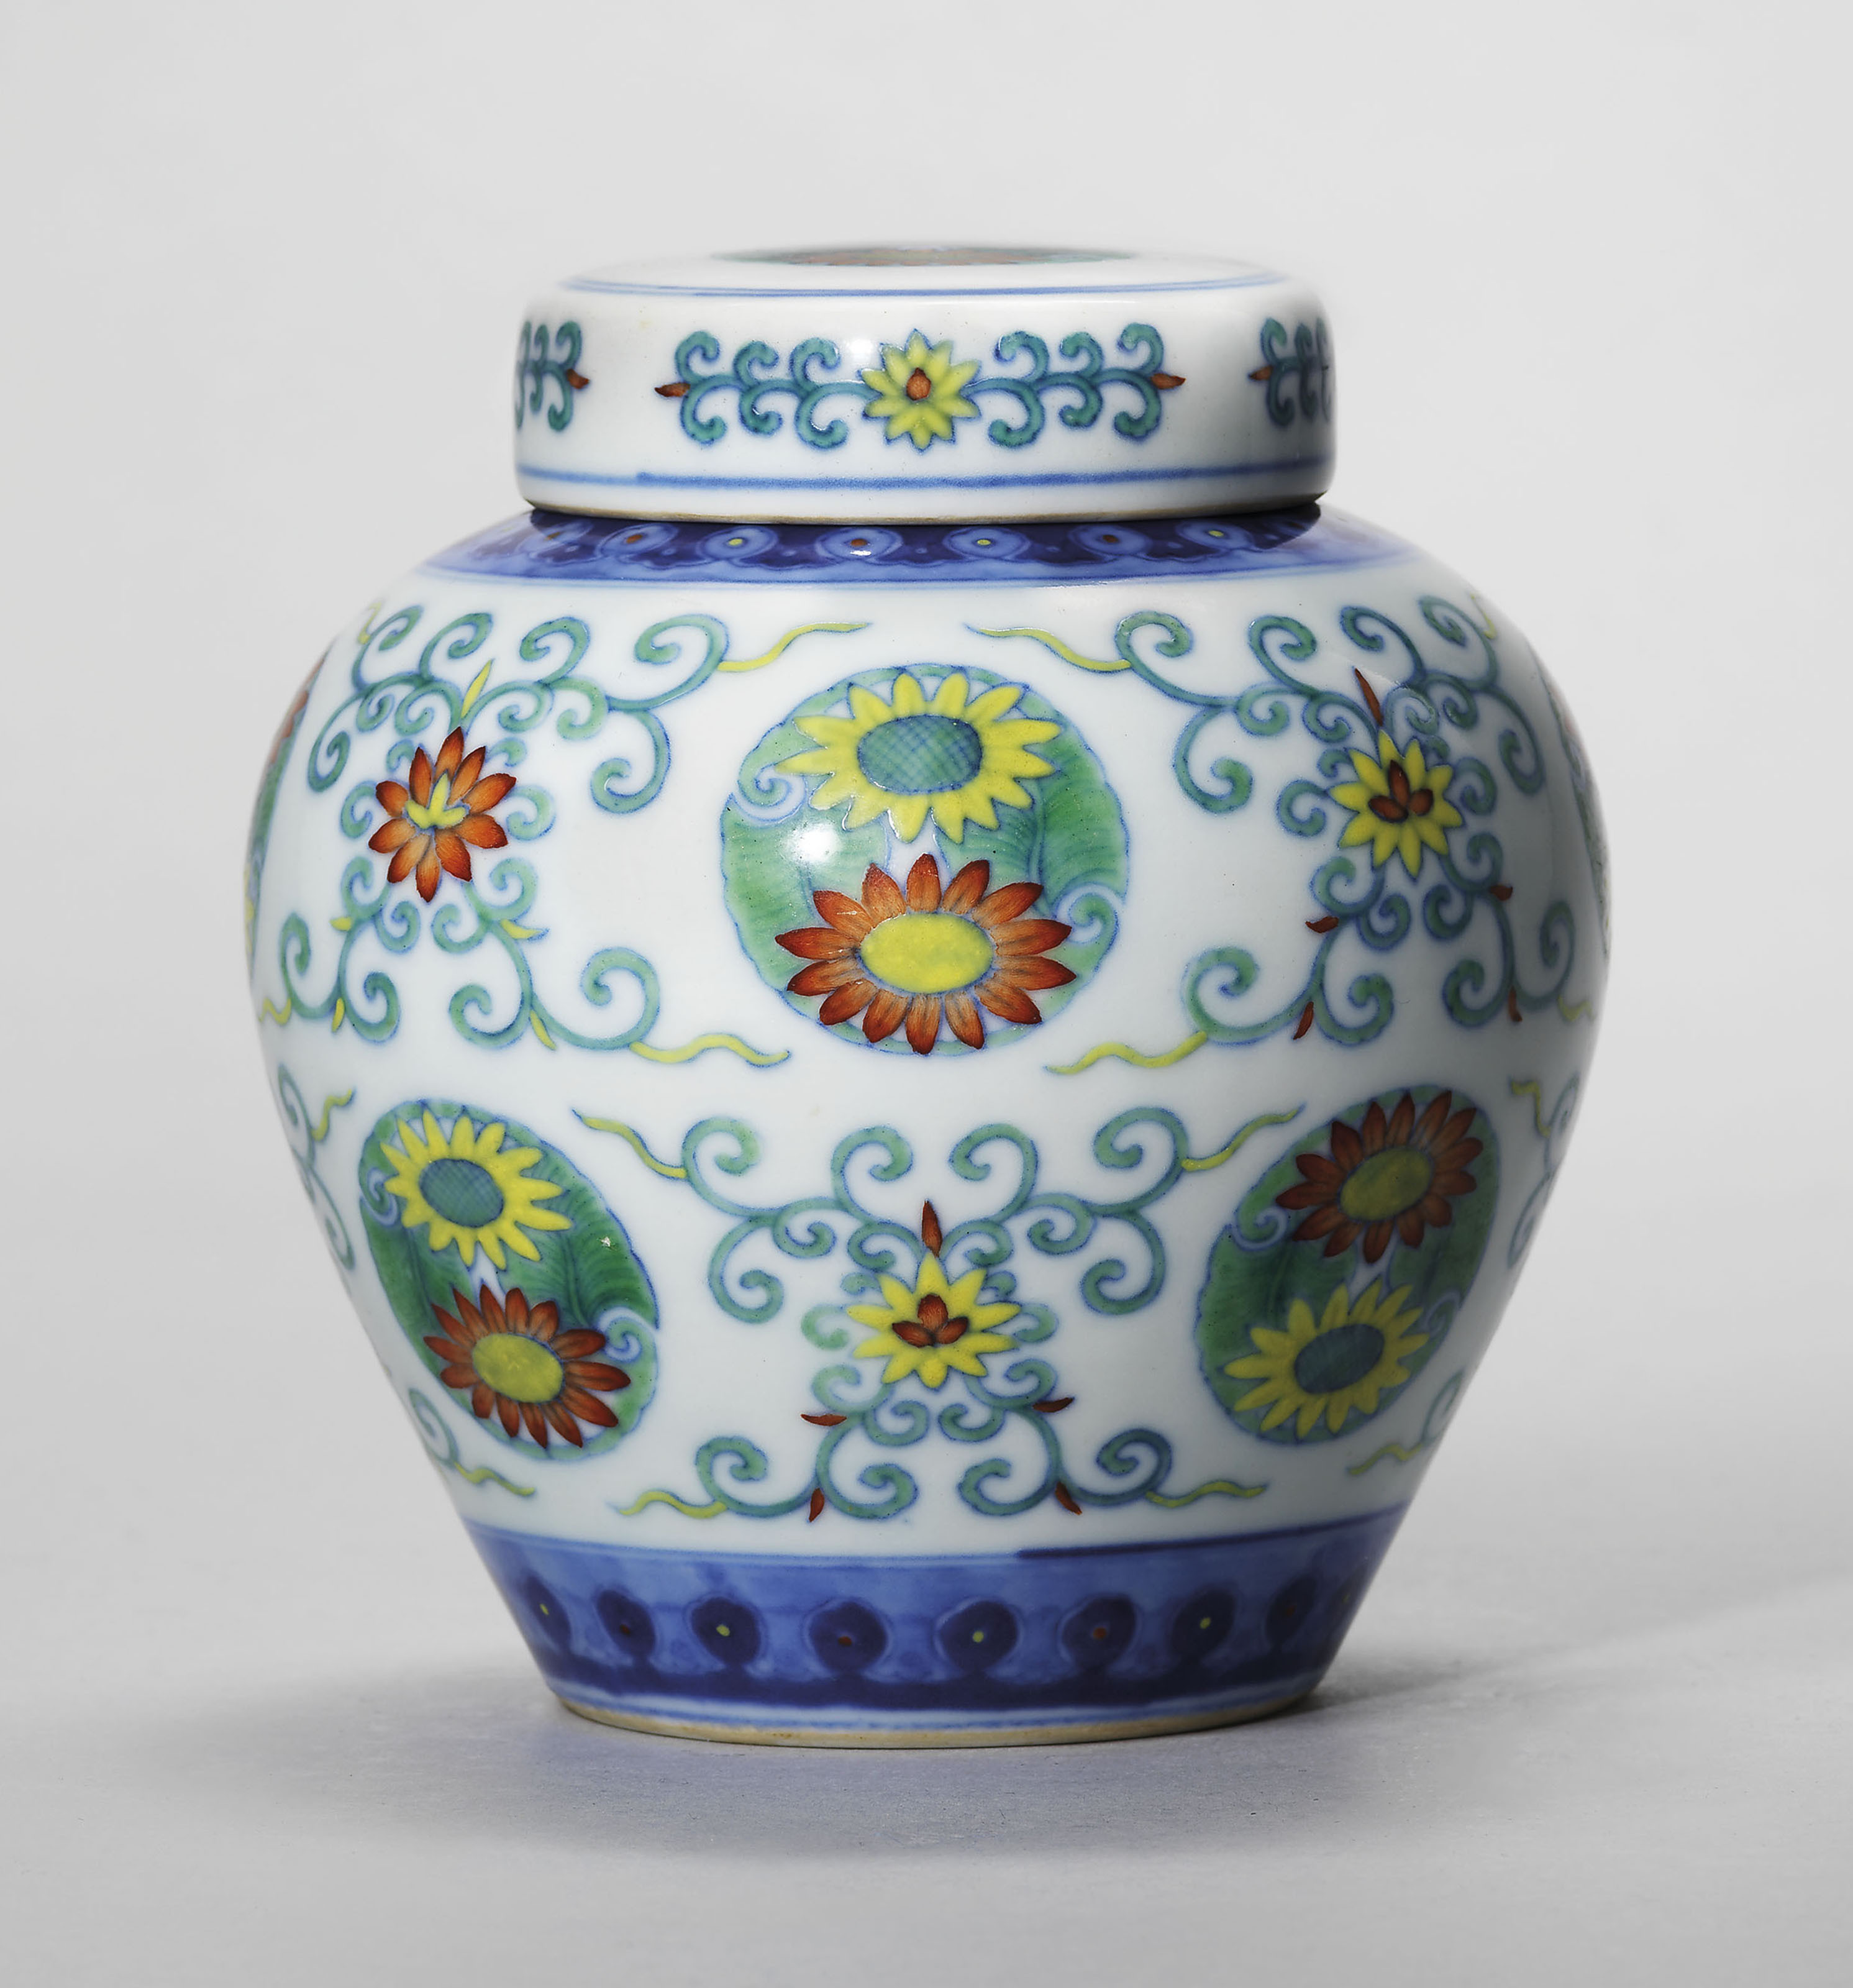 big chinese vases for sale of a guide to the symbolism of flowers on chinese ceramics christies inside a doucai chrysanthemum jar and cover qianlong six character seal mark in underglaze blue